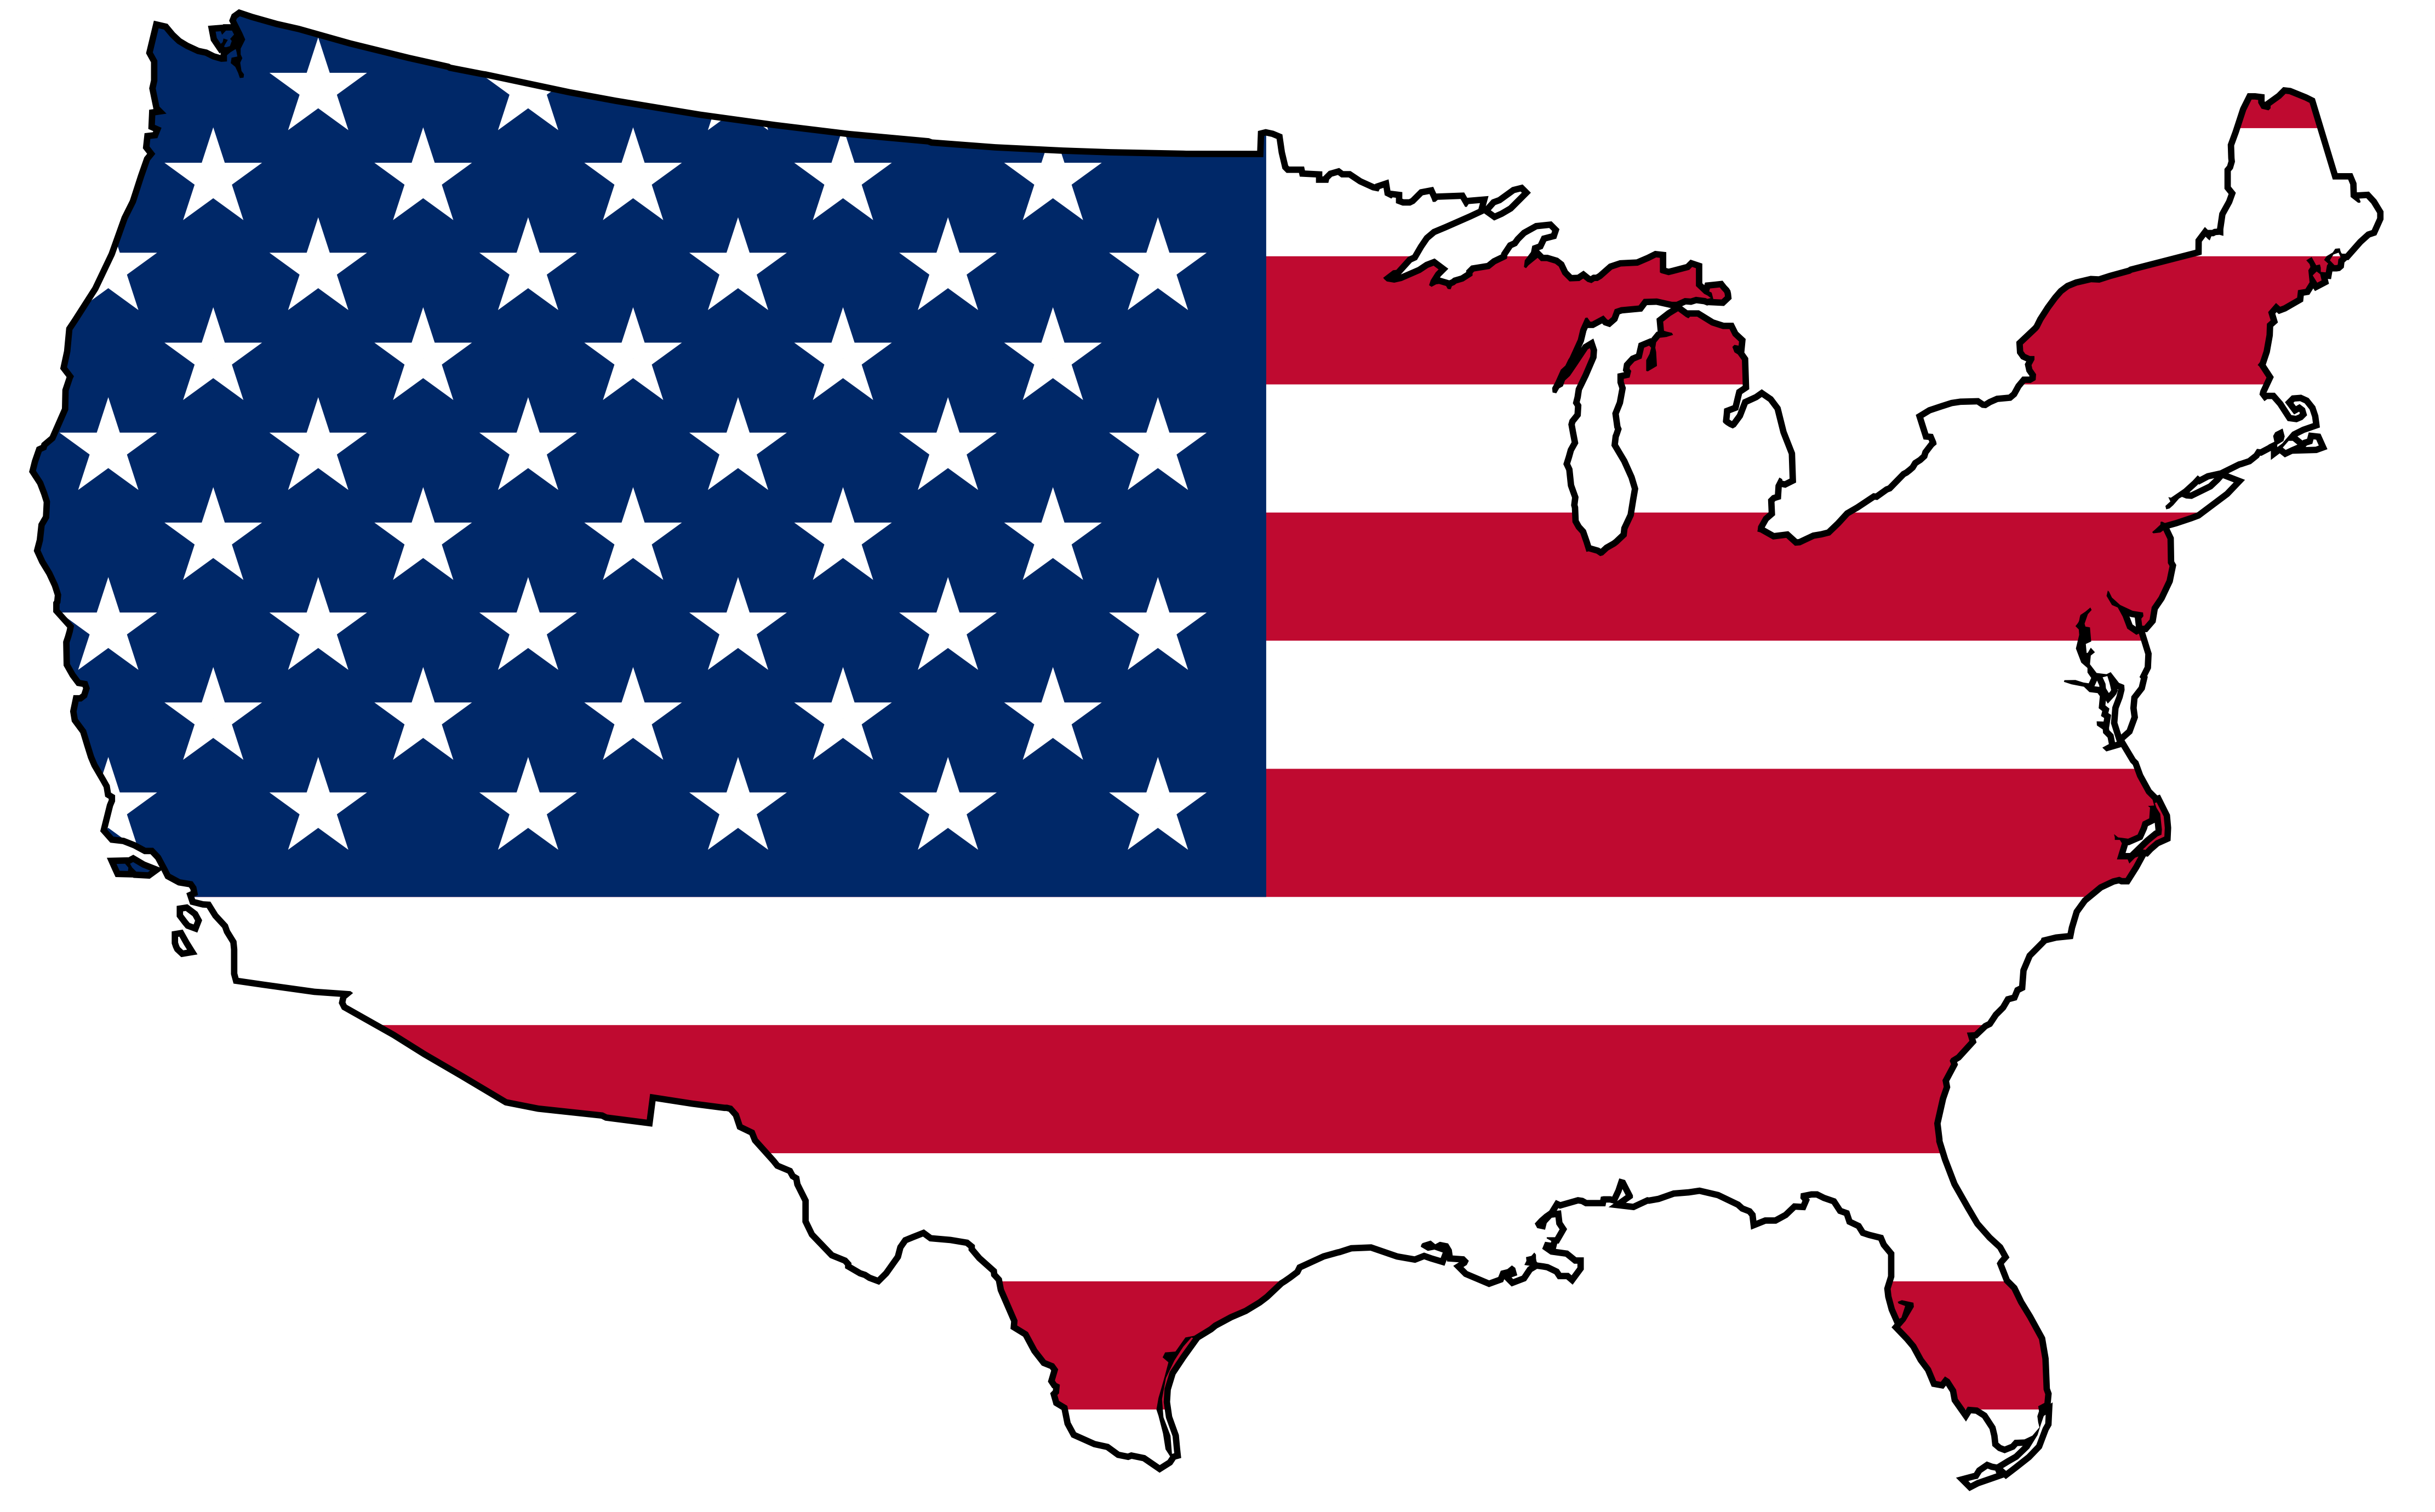 Clipart of the united states jpg black and white stock United States Clipart - The Cliparts jpg black and white stock